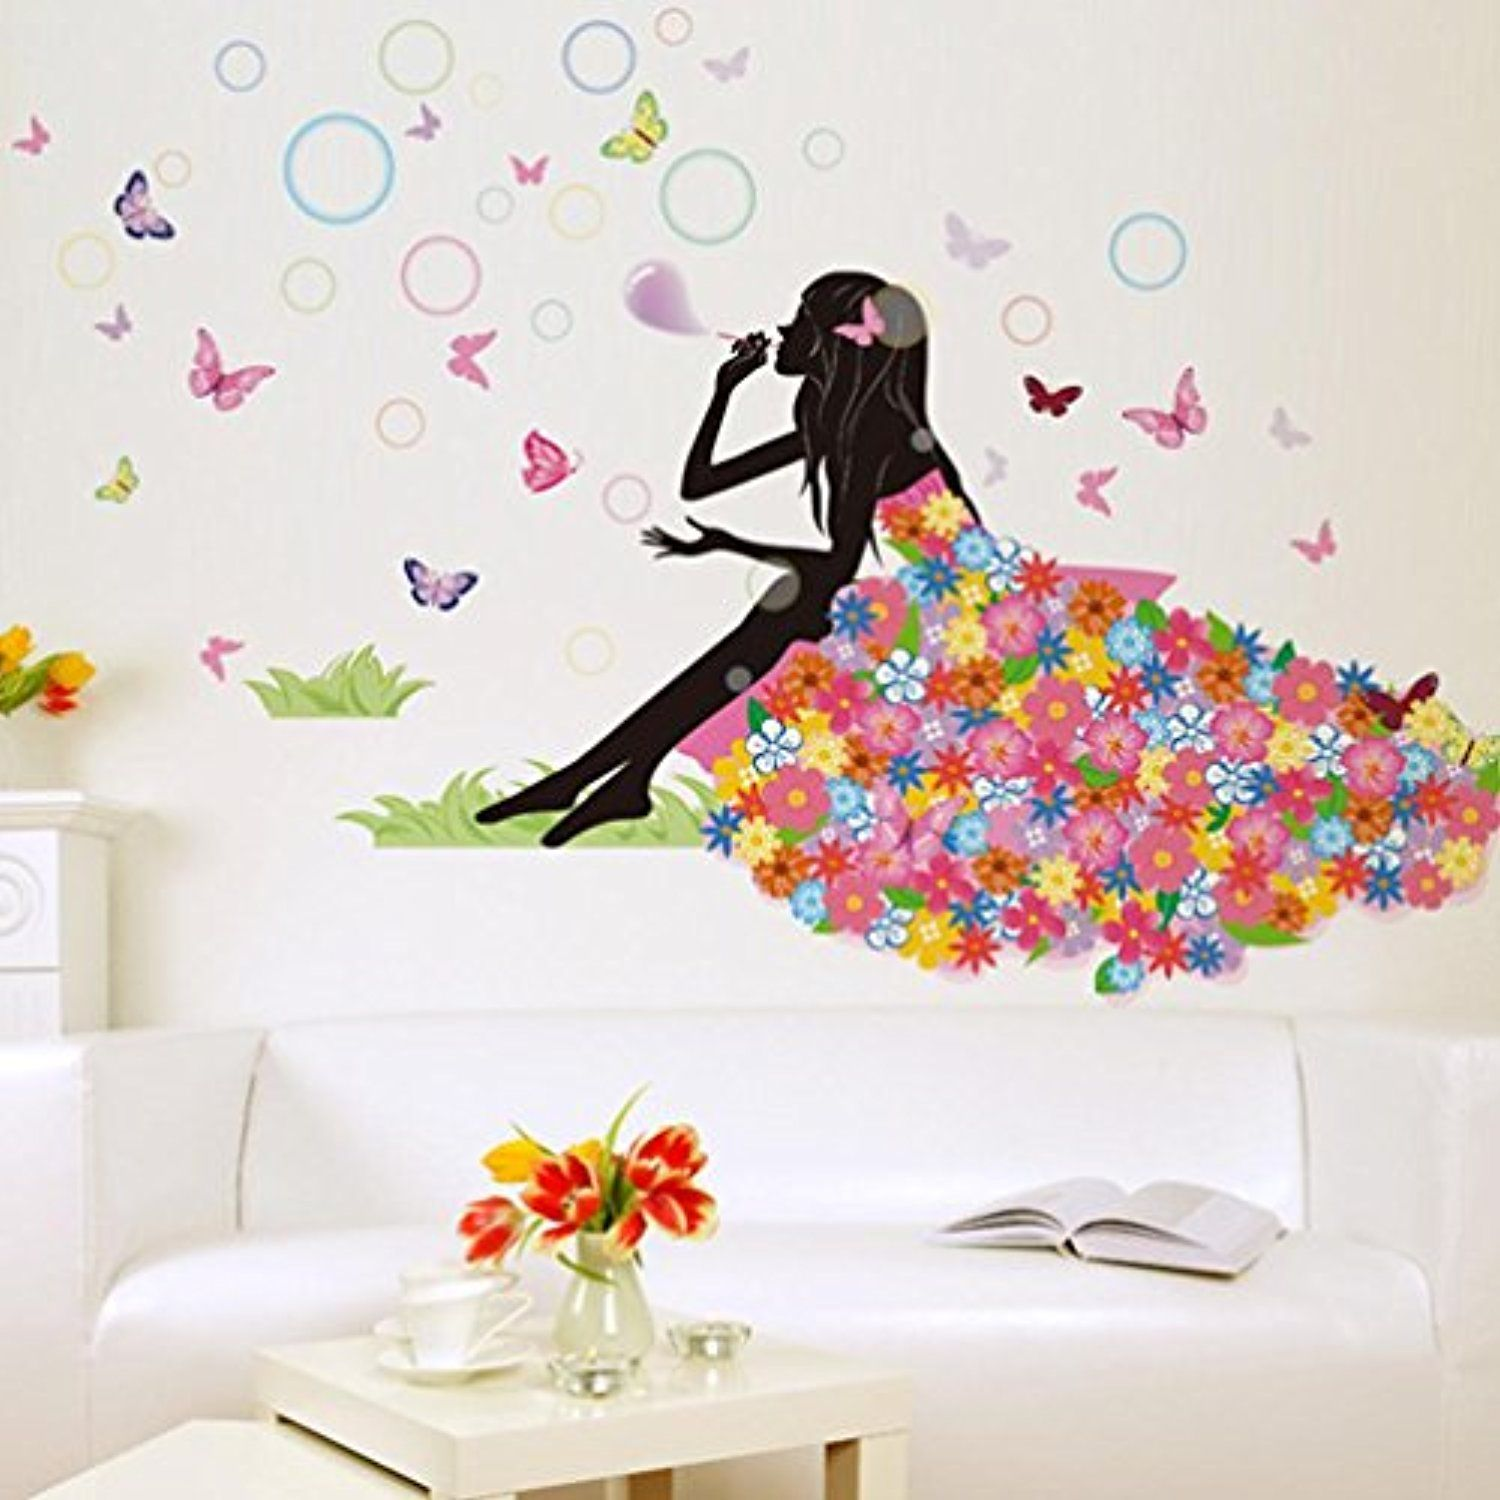 Fashion Creative BLESS Art Removable Home Vinyl Window Wall Stickers Decal Decor